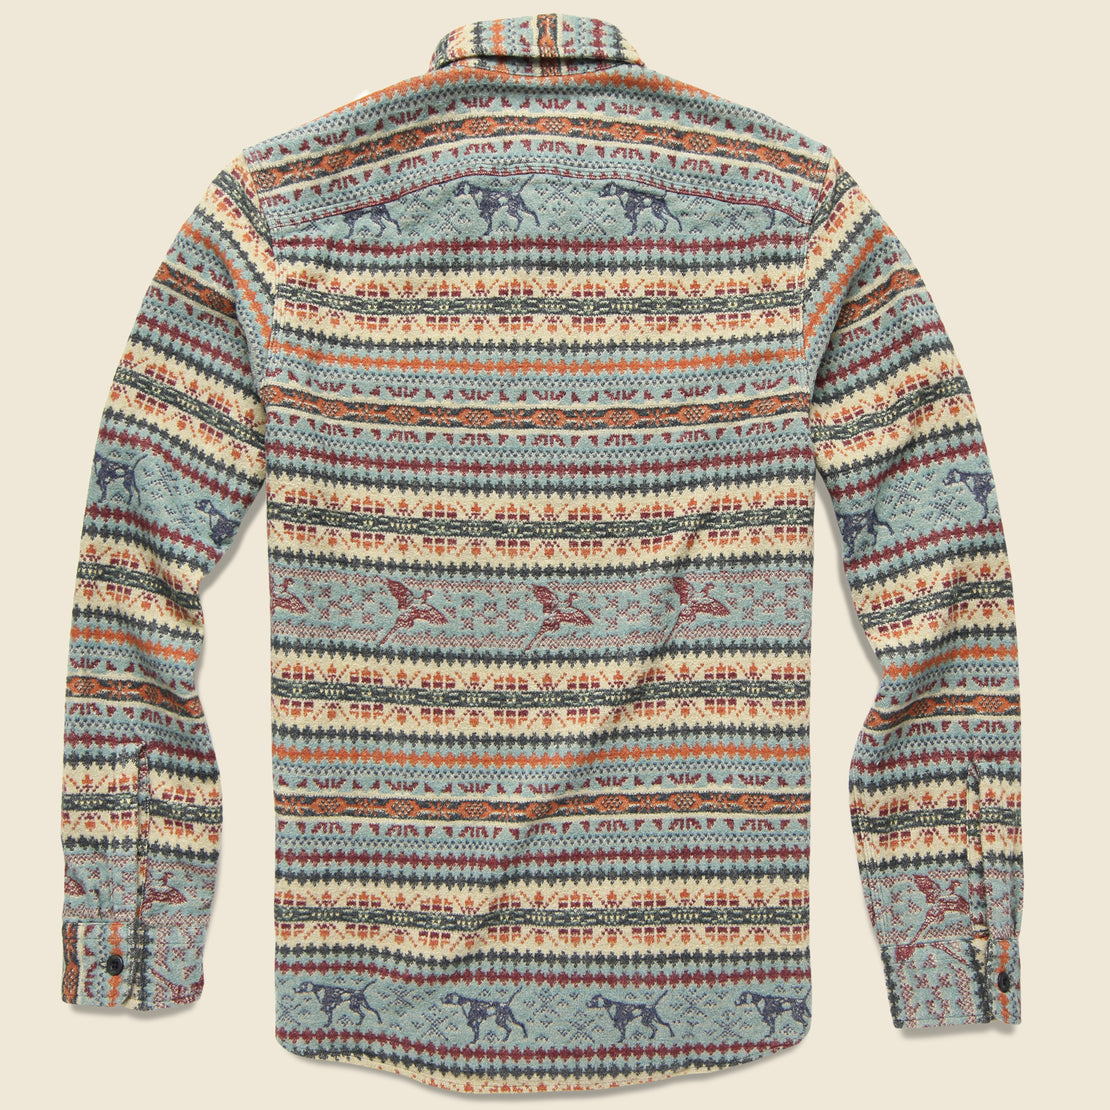 Fair Isle Jacquard Workshirt - Blue